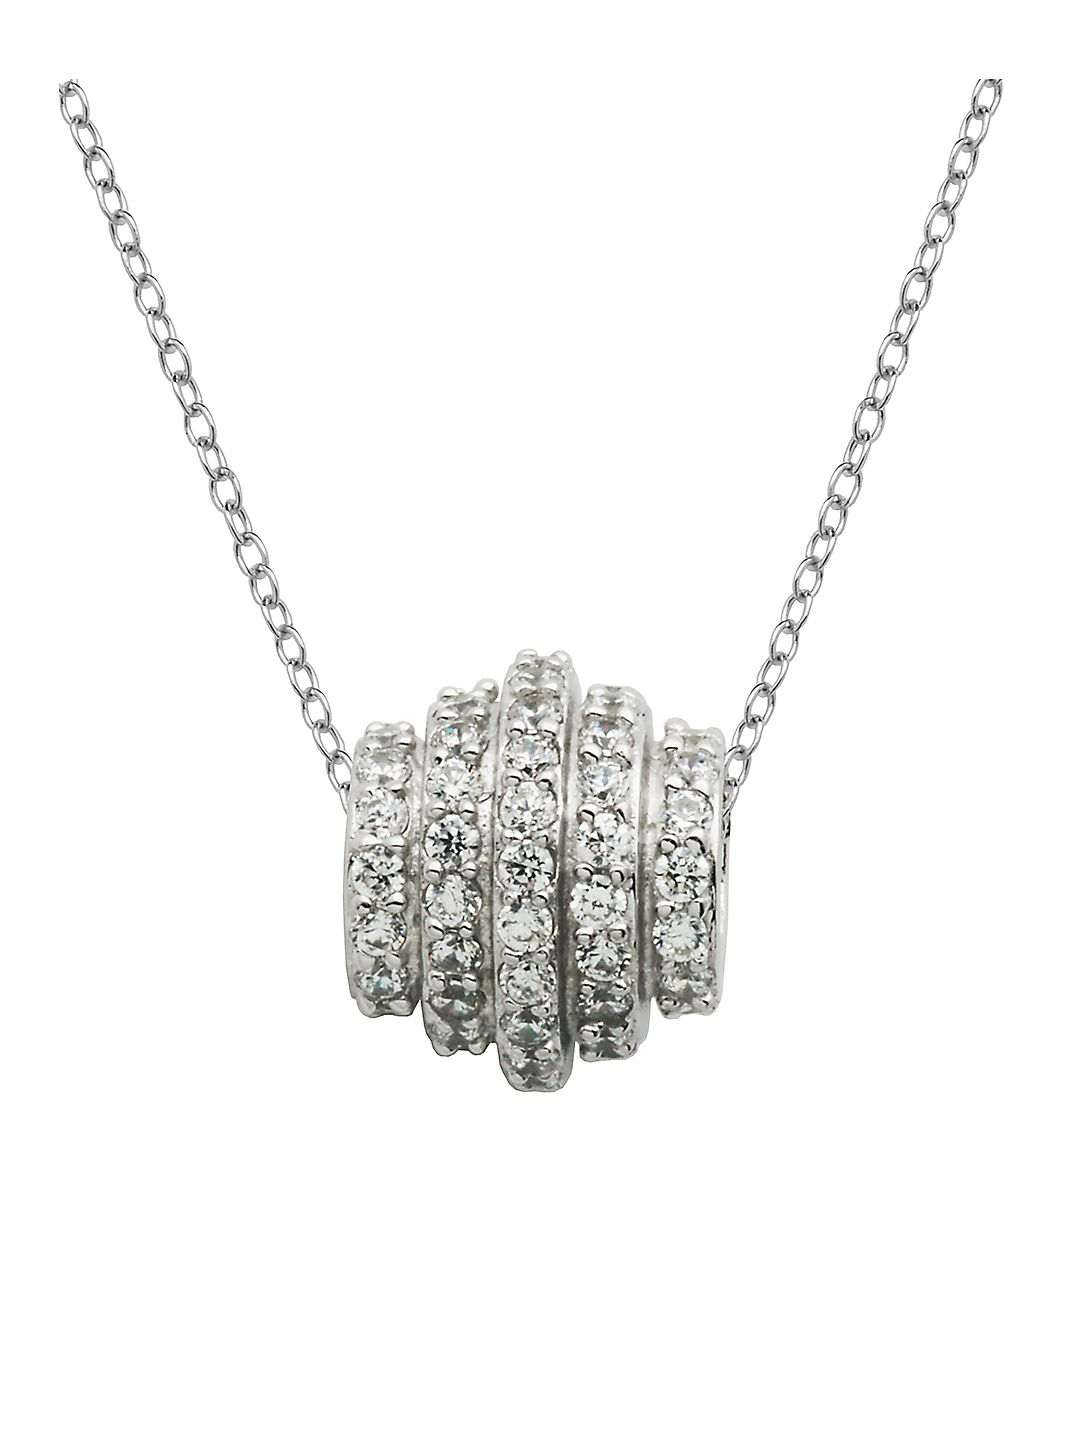 Sterling Silver and Cubic Zirconia Ring Pendant Necklace